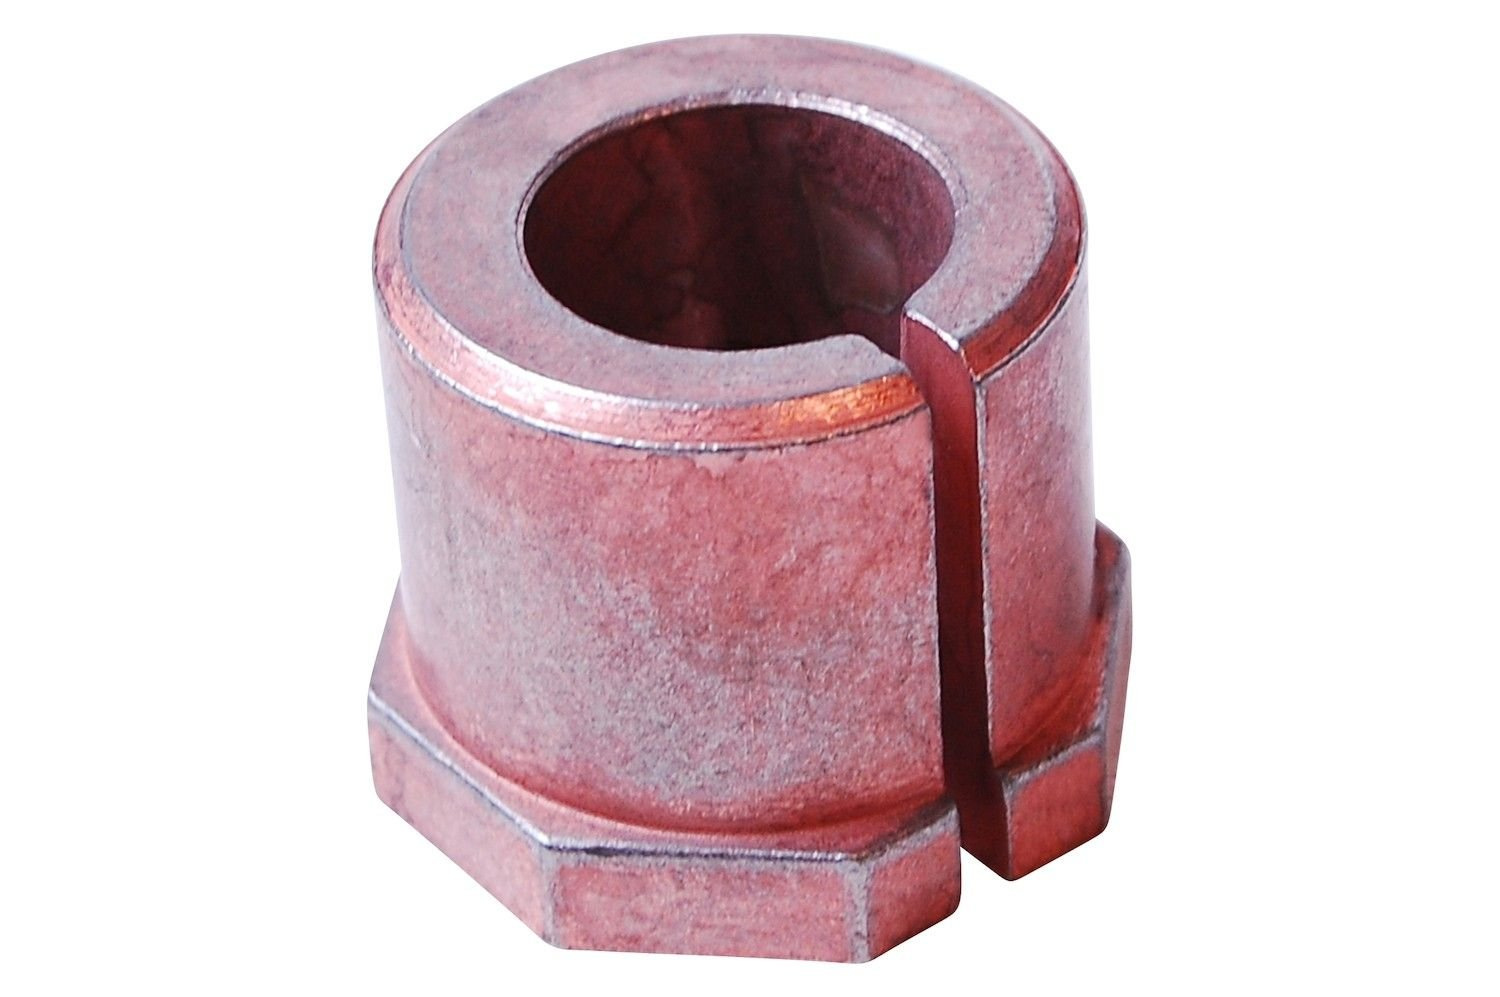 Ford F-250 Alignment Caster / Camber Bushing Replacement (Centric